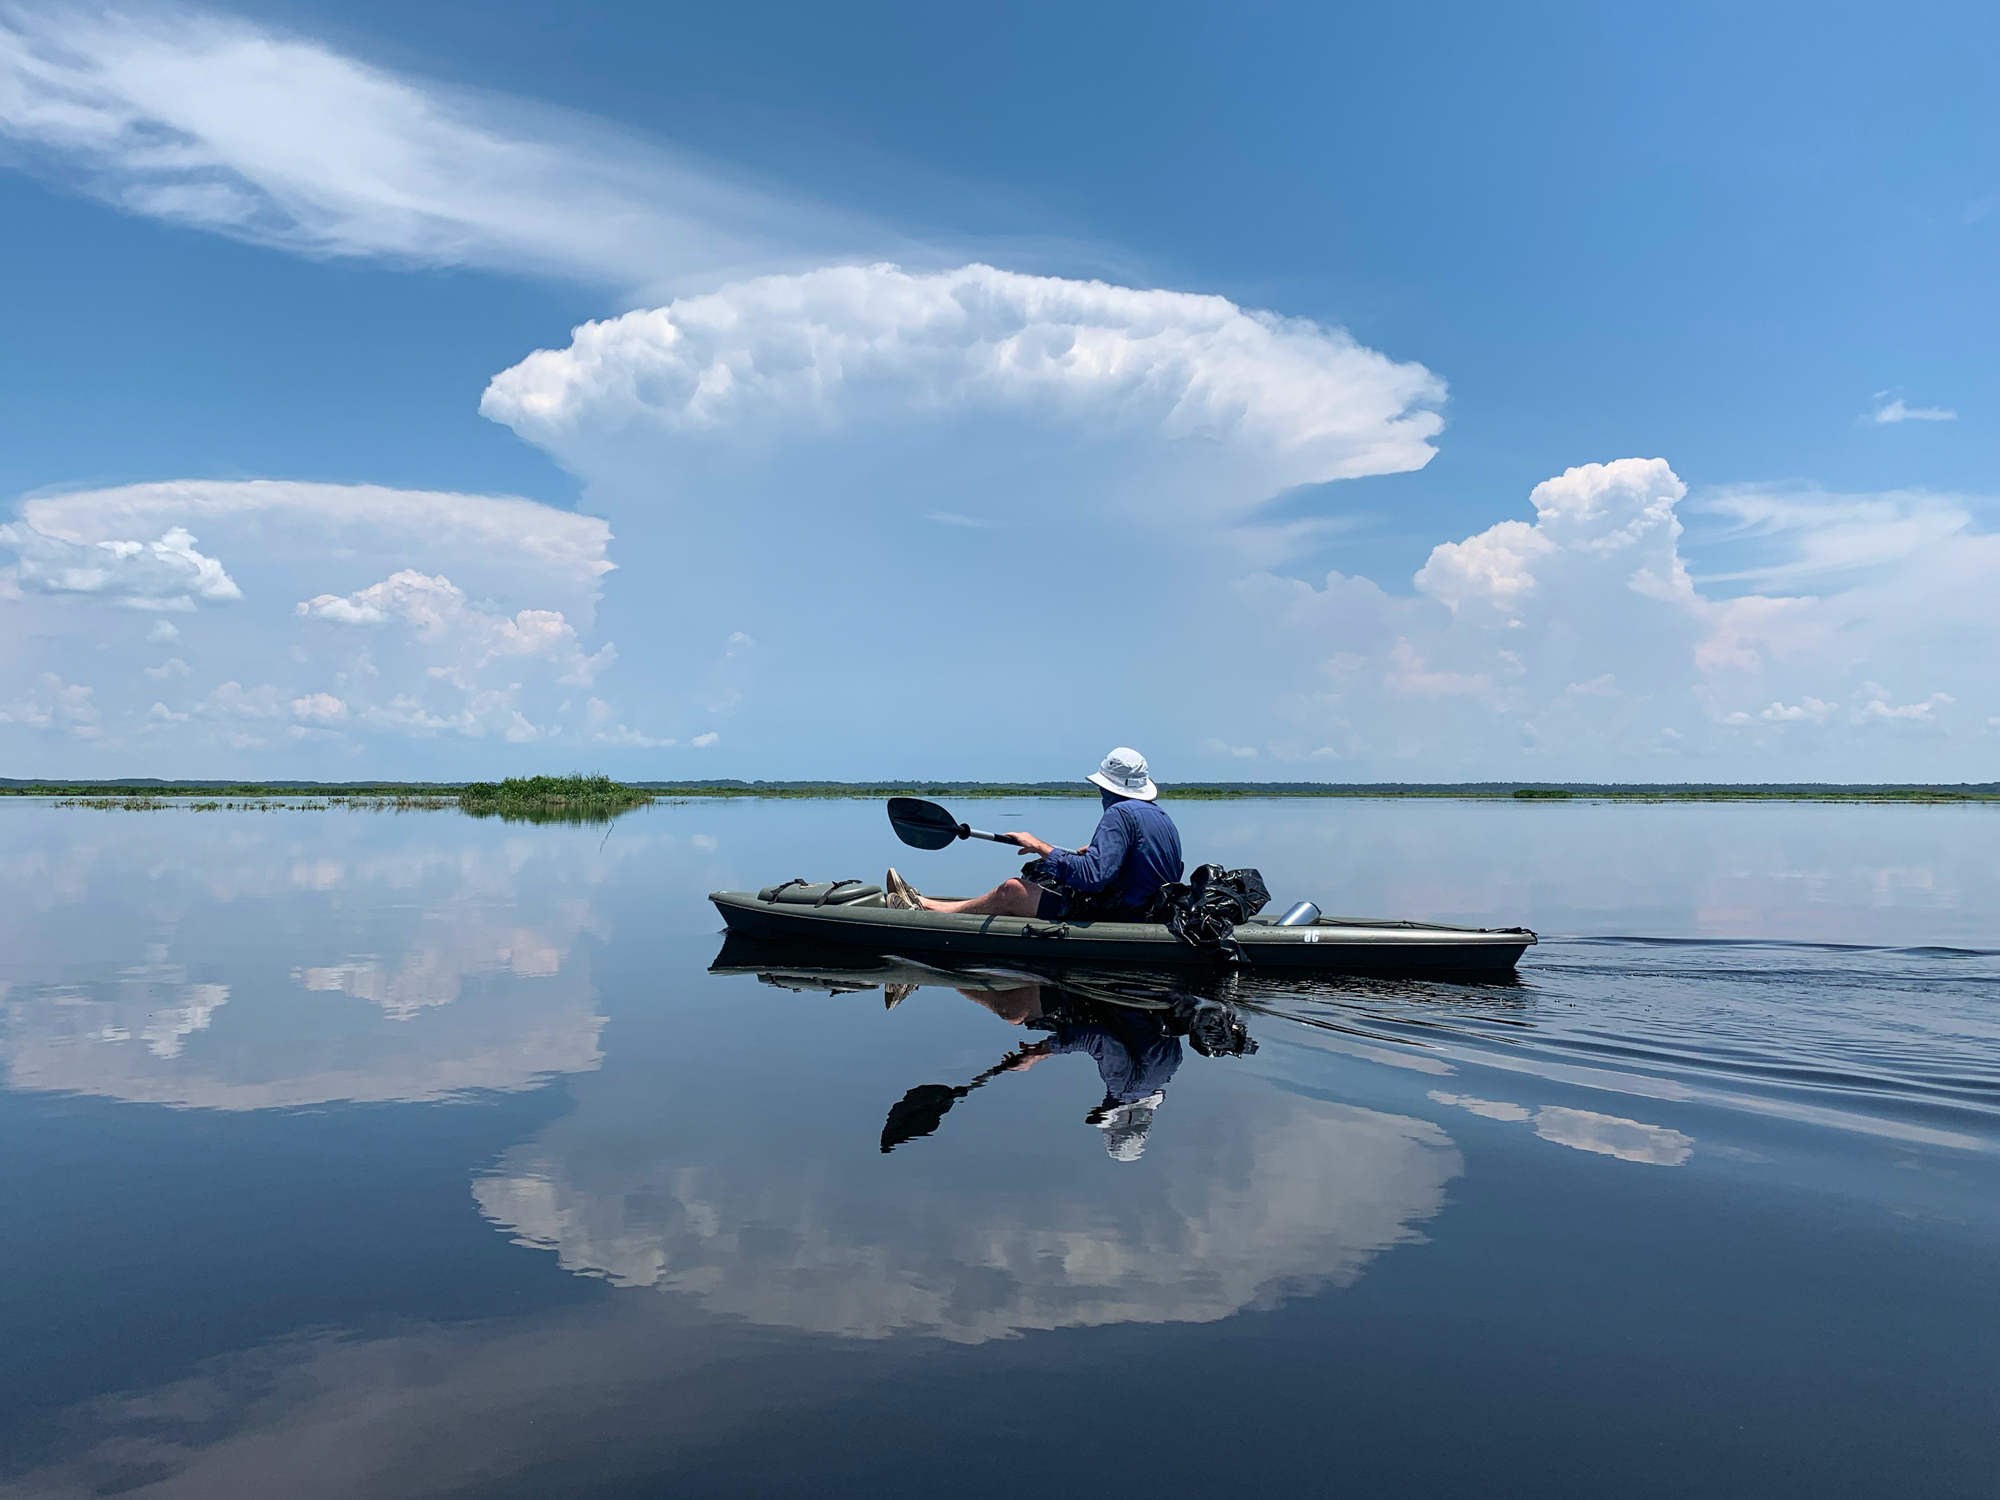 A large storm looms in the distance during our paddle out to the La Chua Trail observation platform in Paynes Prairie Preserve.